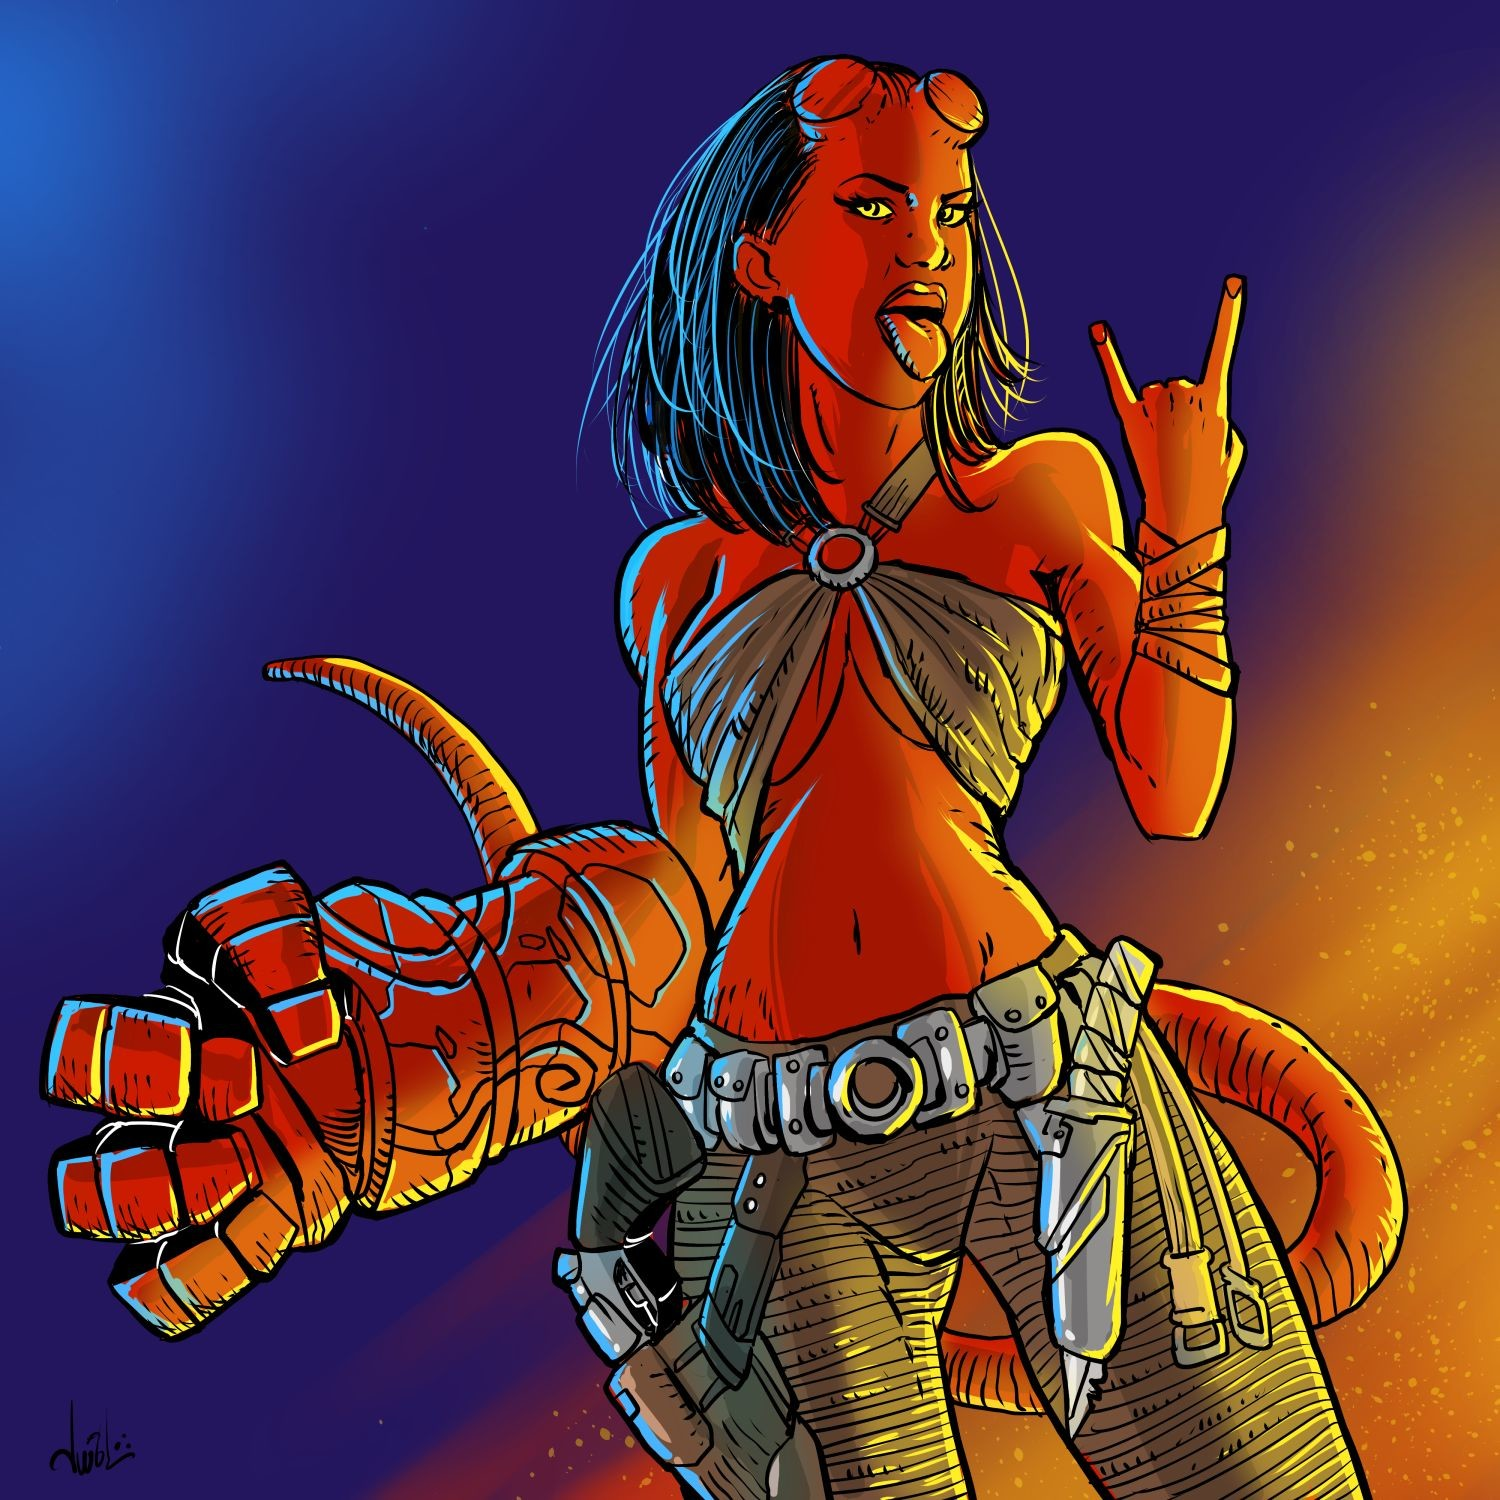 Antunesketch joao antunes jr hellgirlcolor